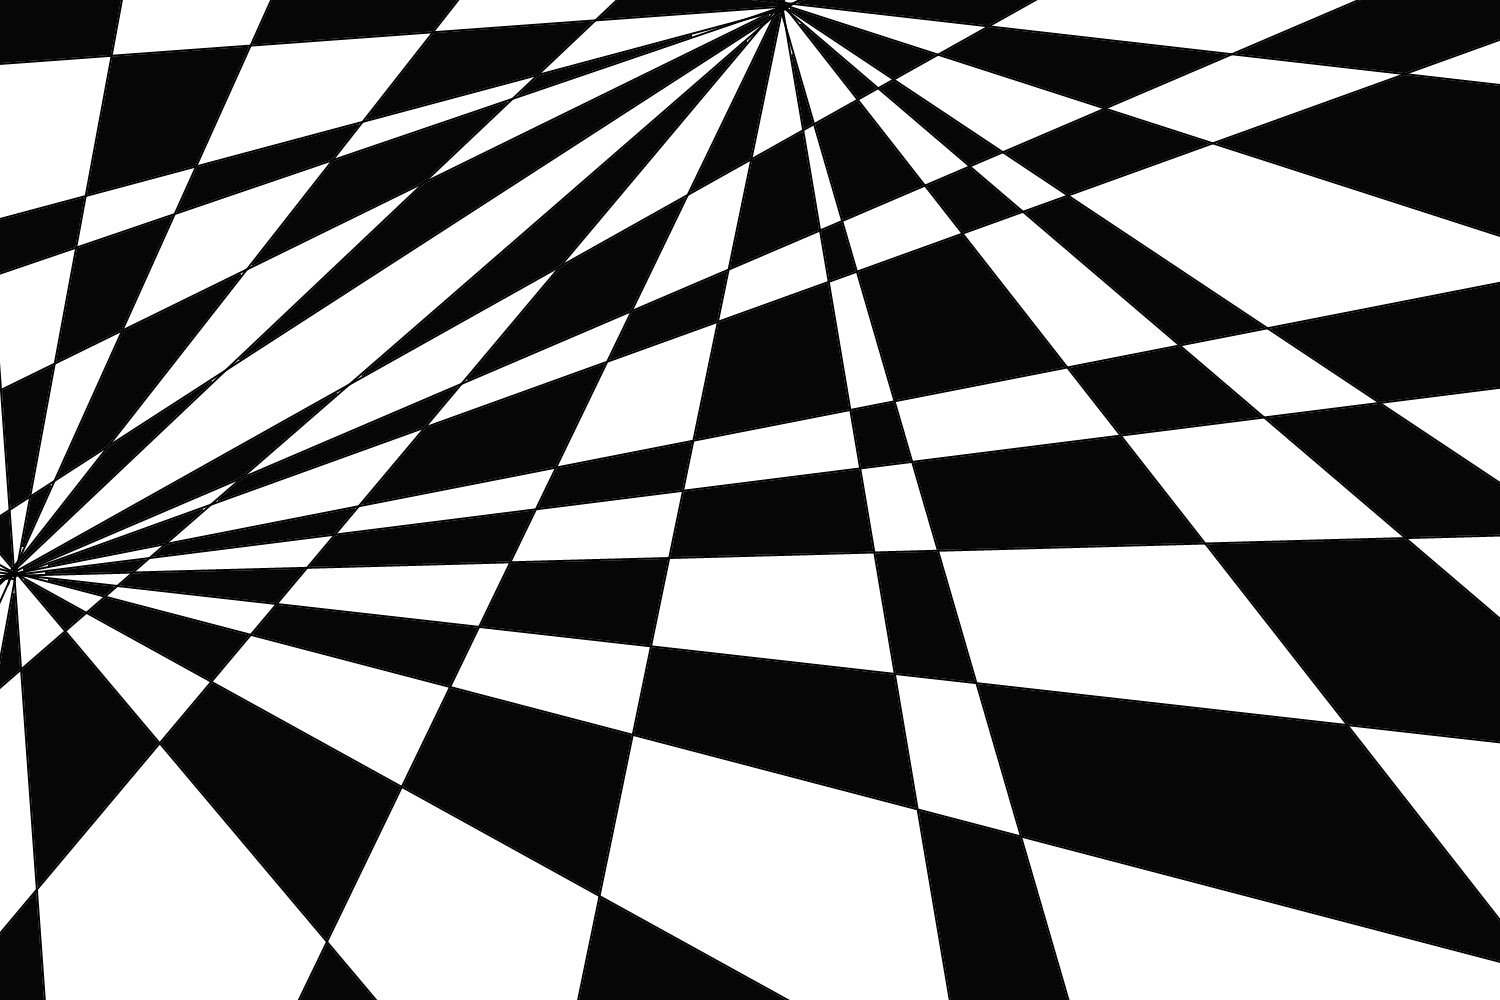 graphic art 2010: Elizabeth James Optical Illusion